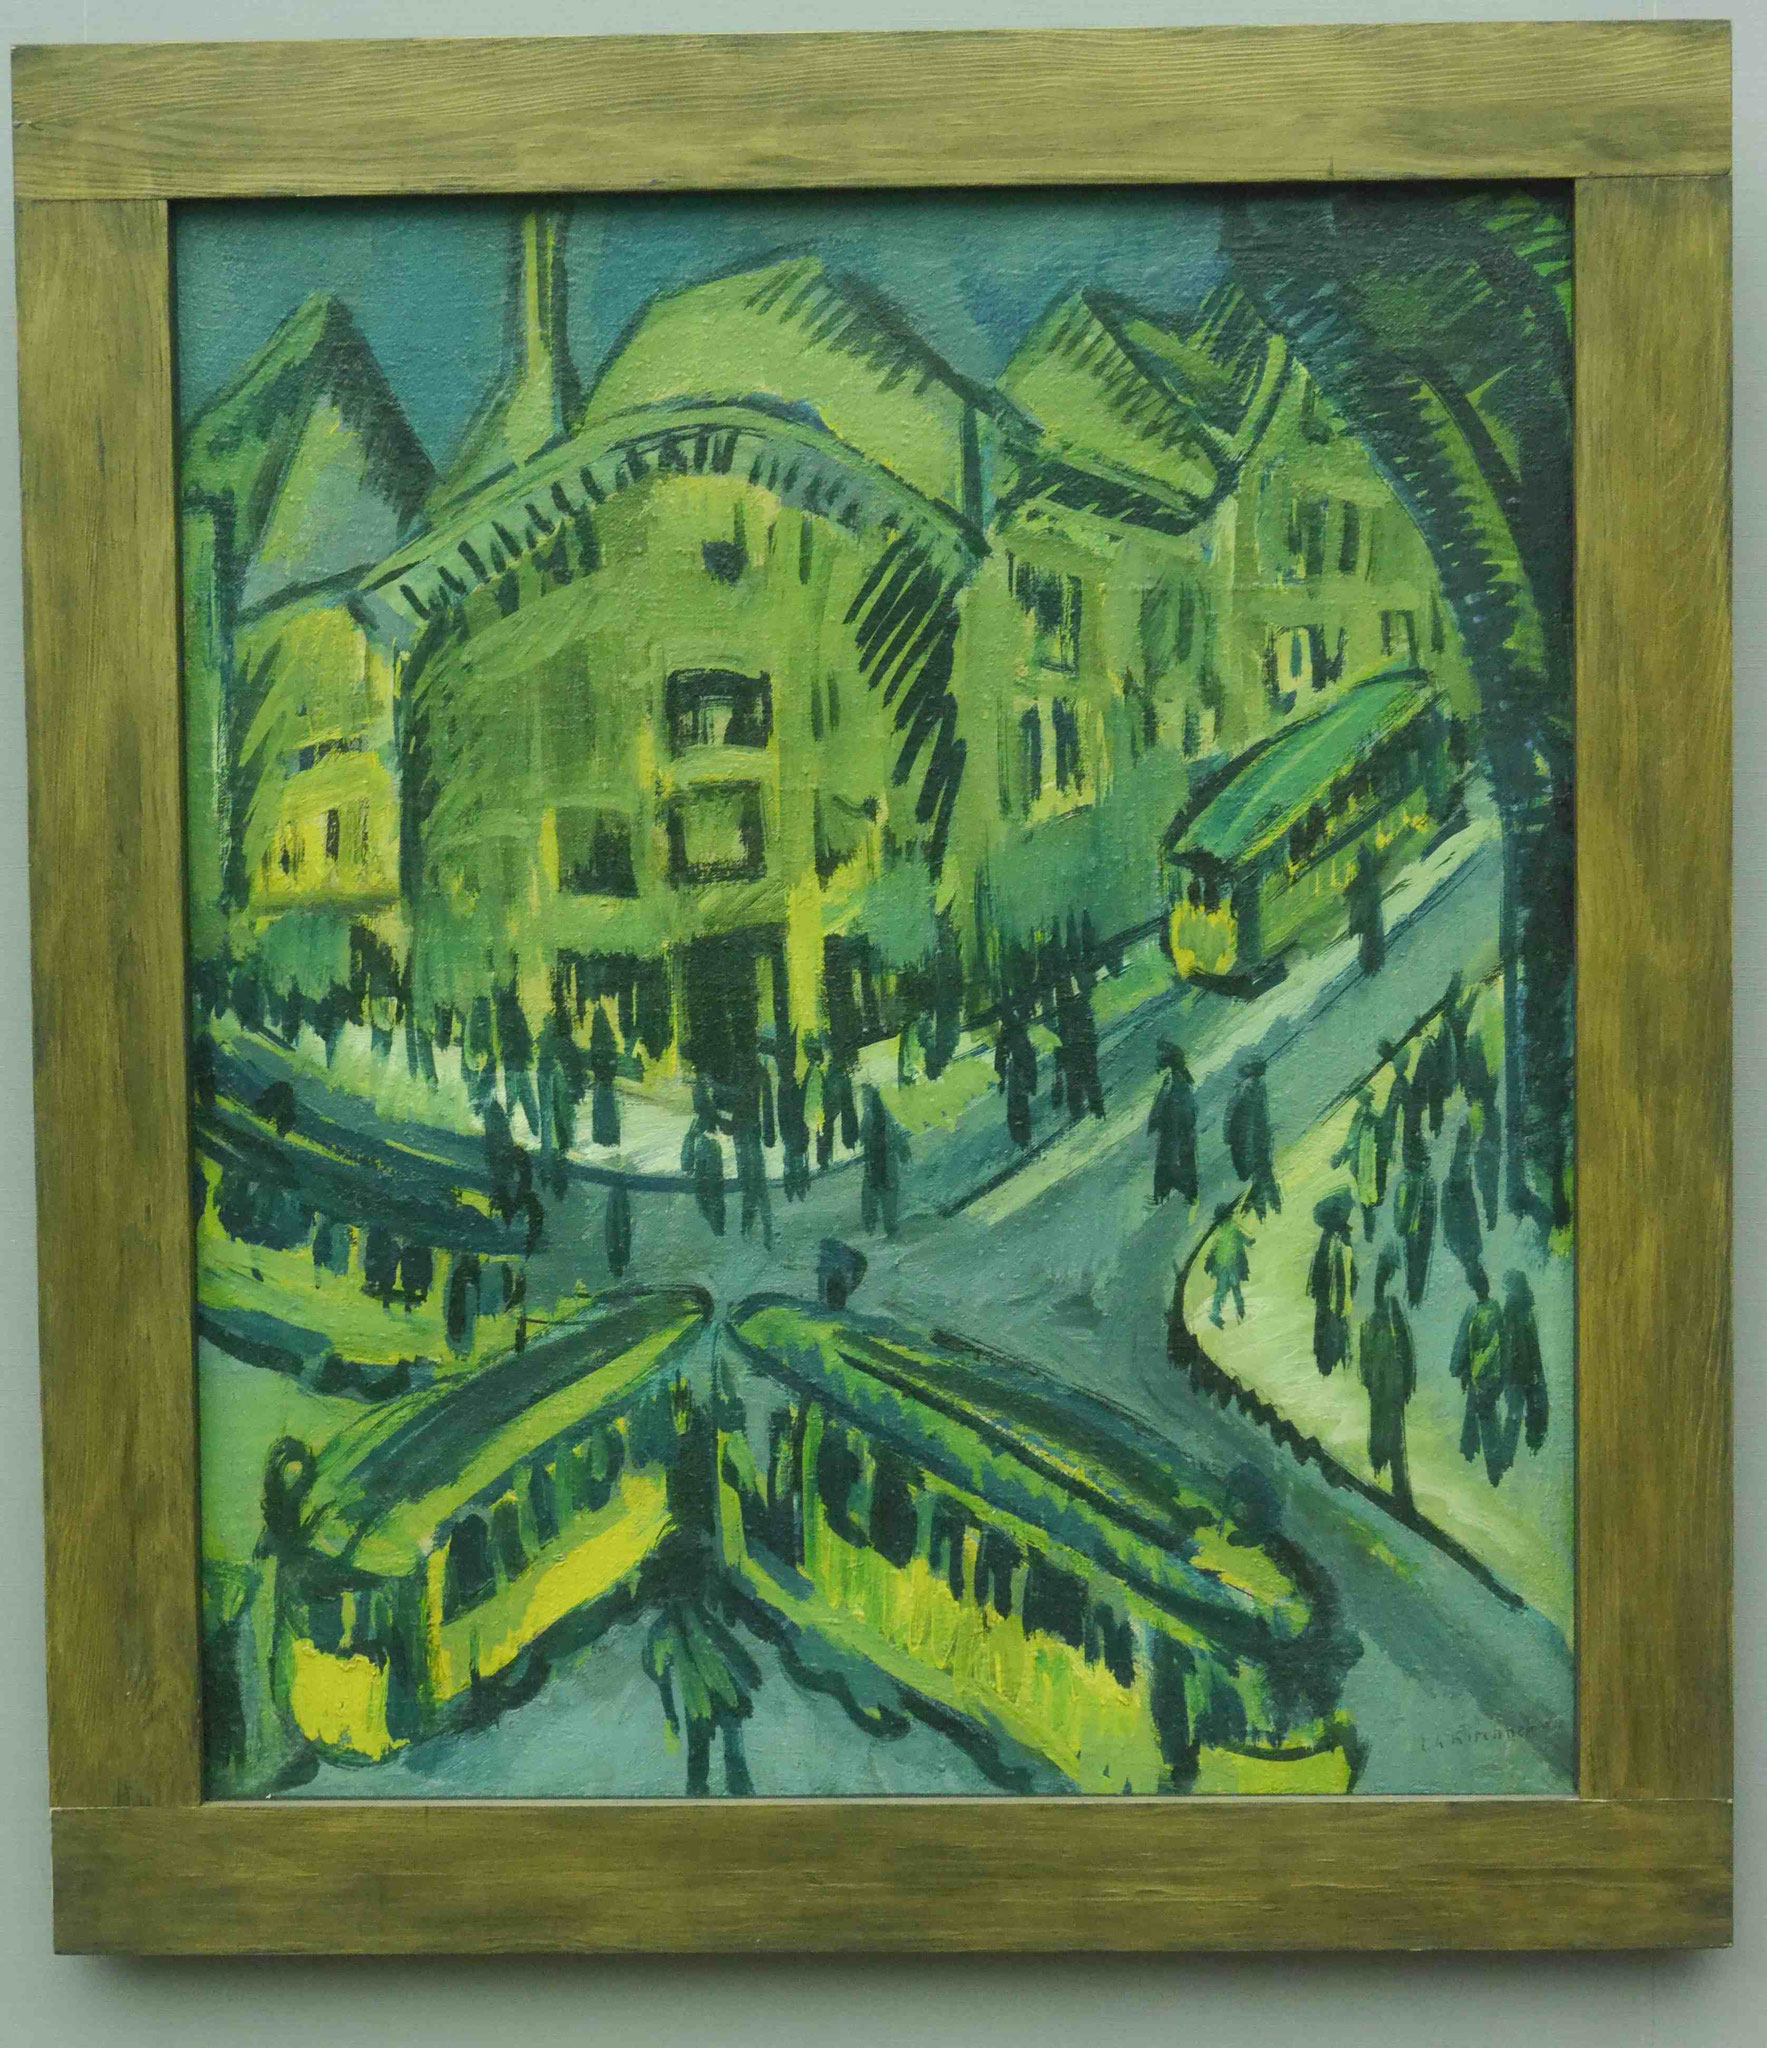 Ernst Ludwig Kirchner, ImEx, Stiftung Stadtmuseum Berlin